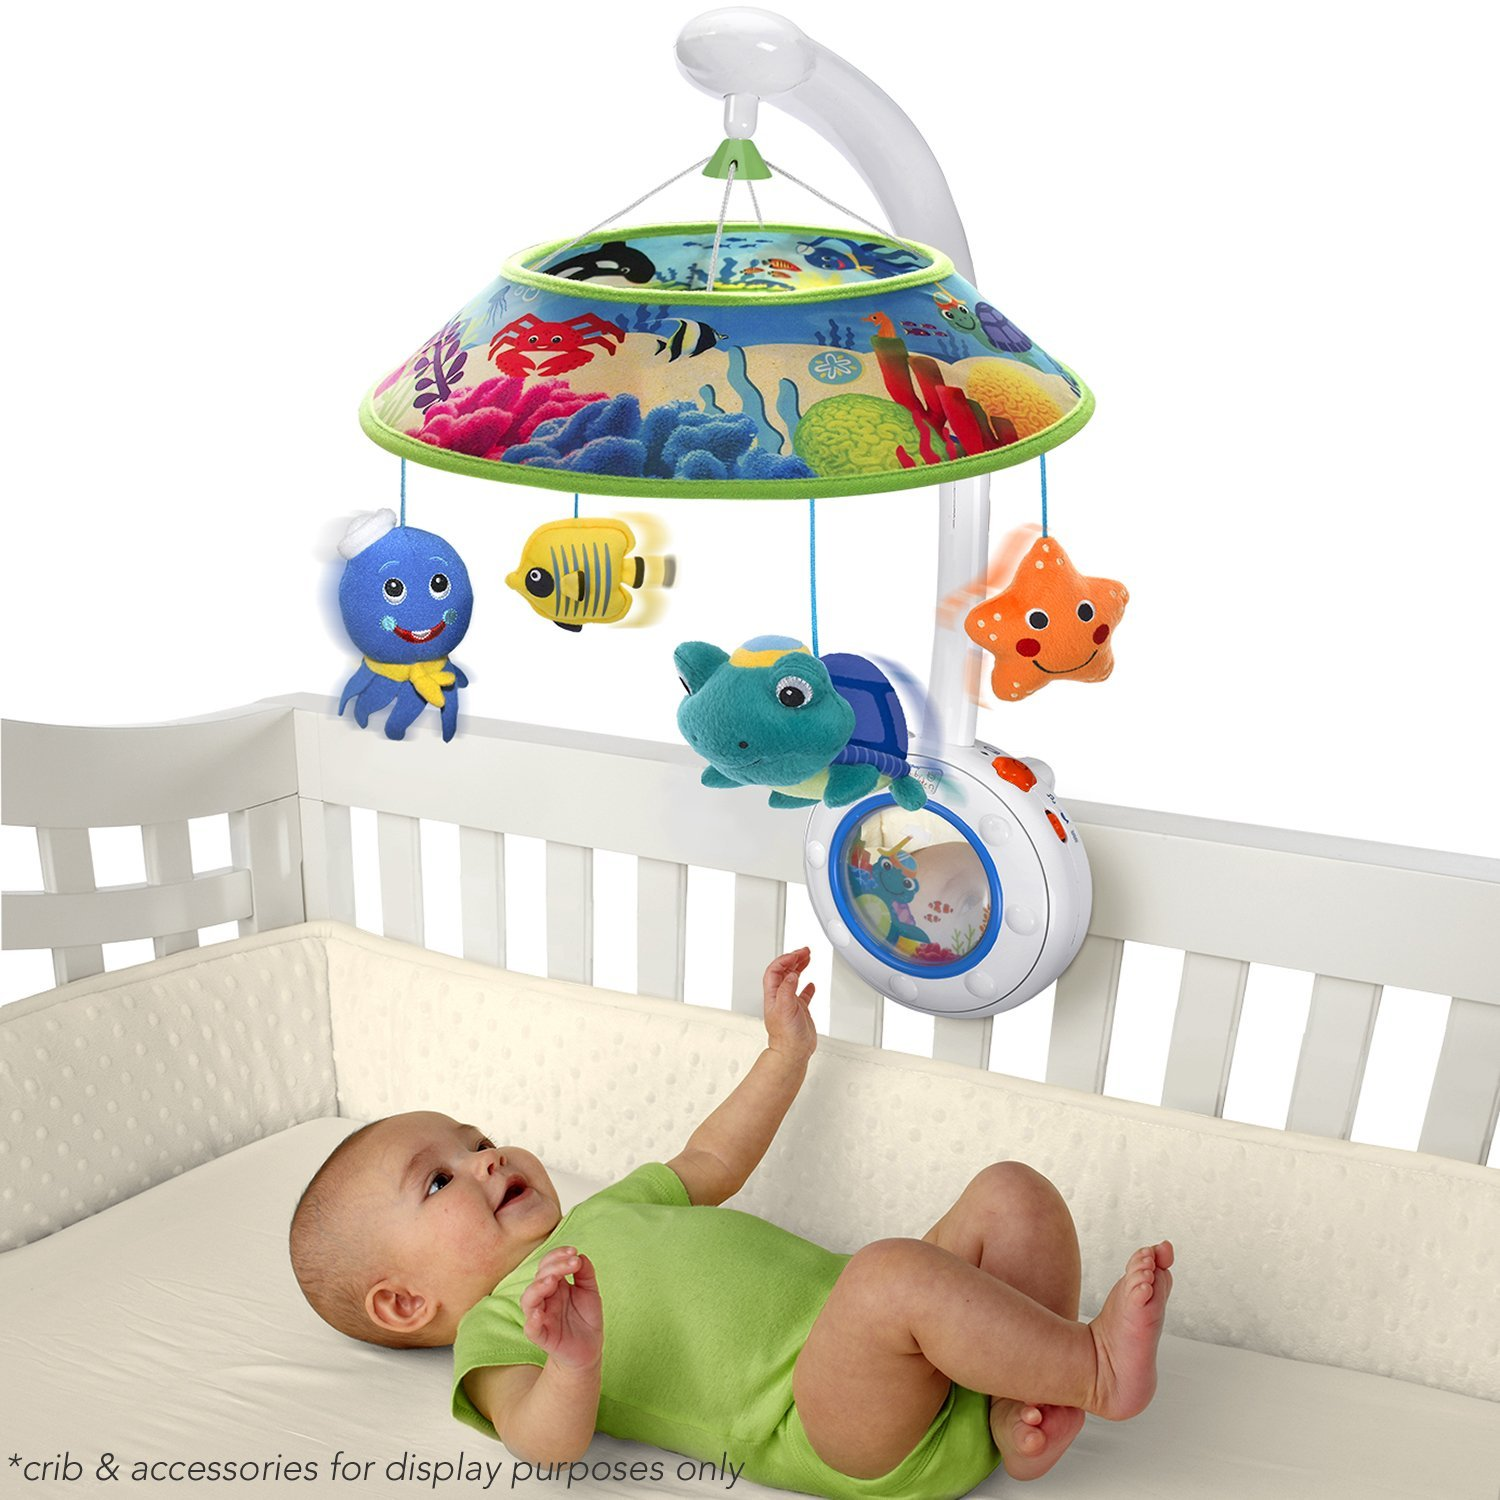 A Great Find A Baby Mobile For The Nicu Every Tiny Thing